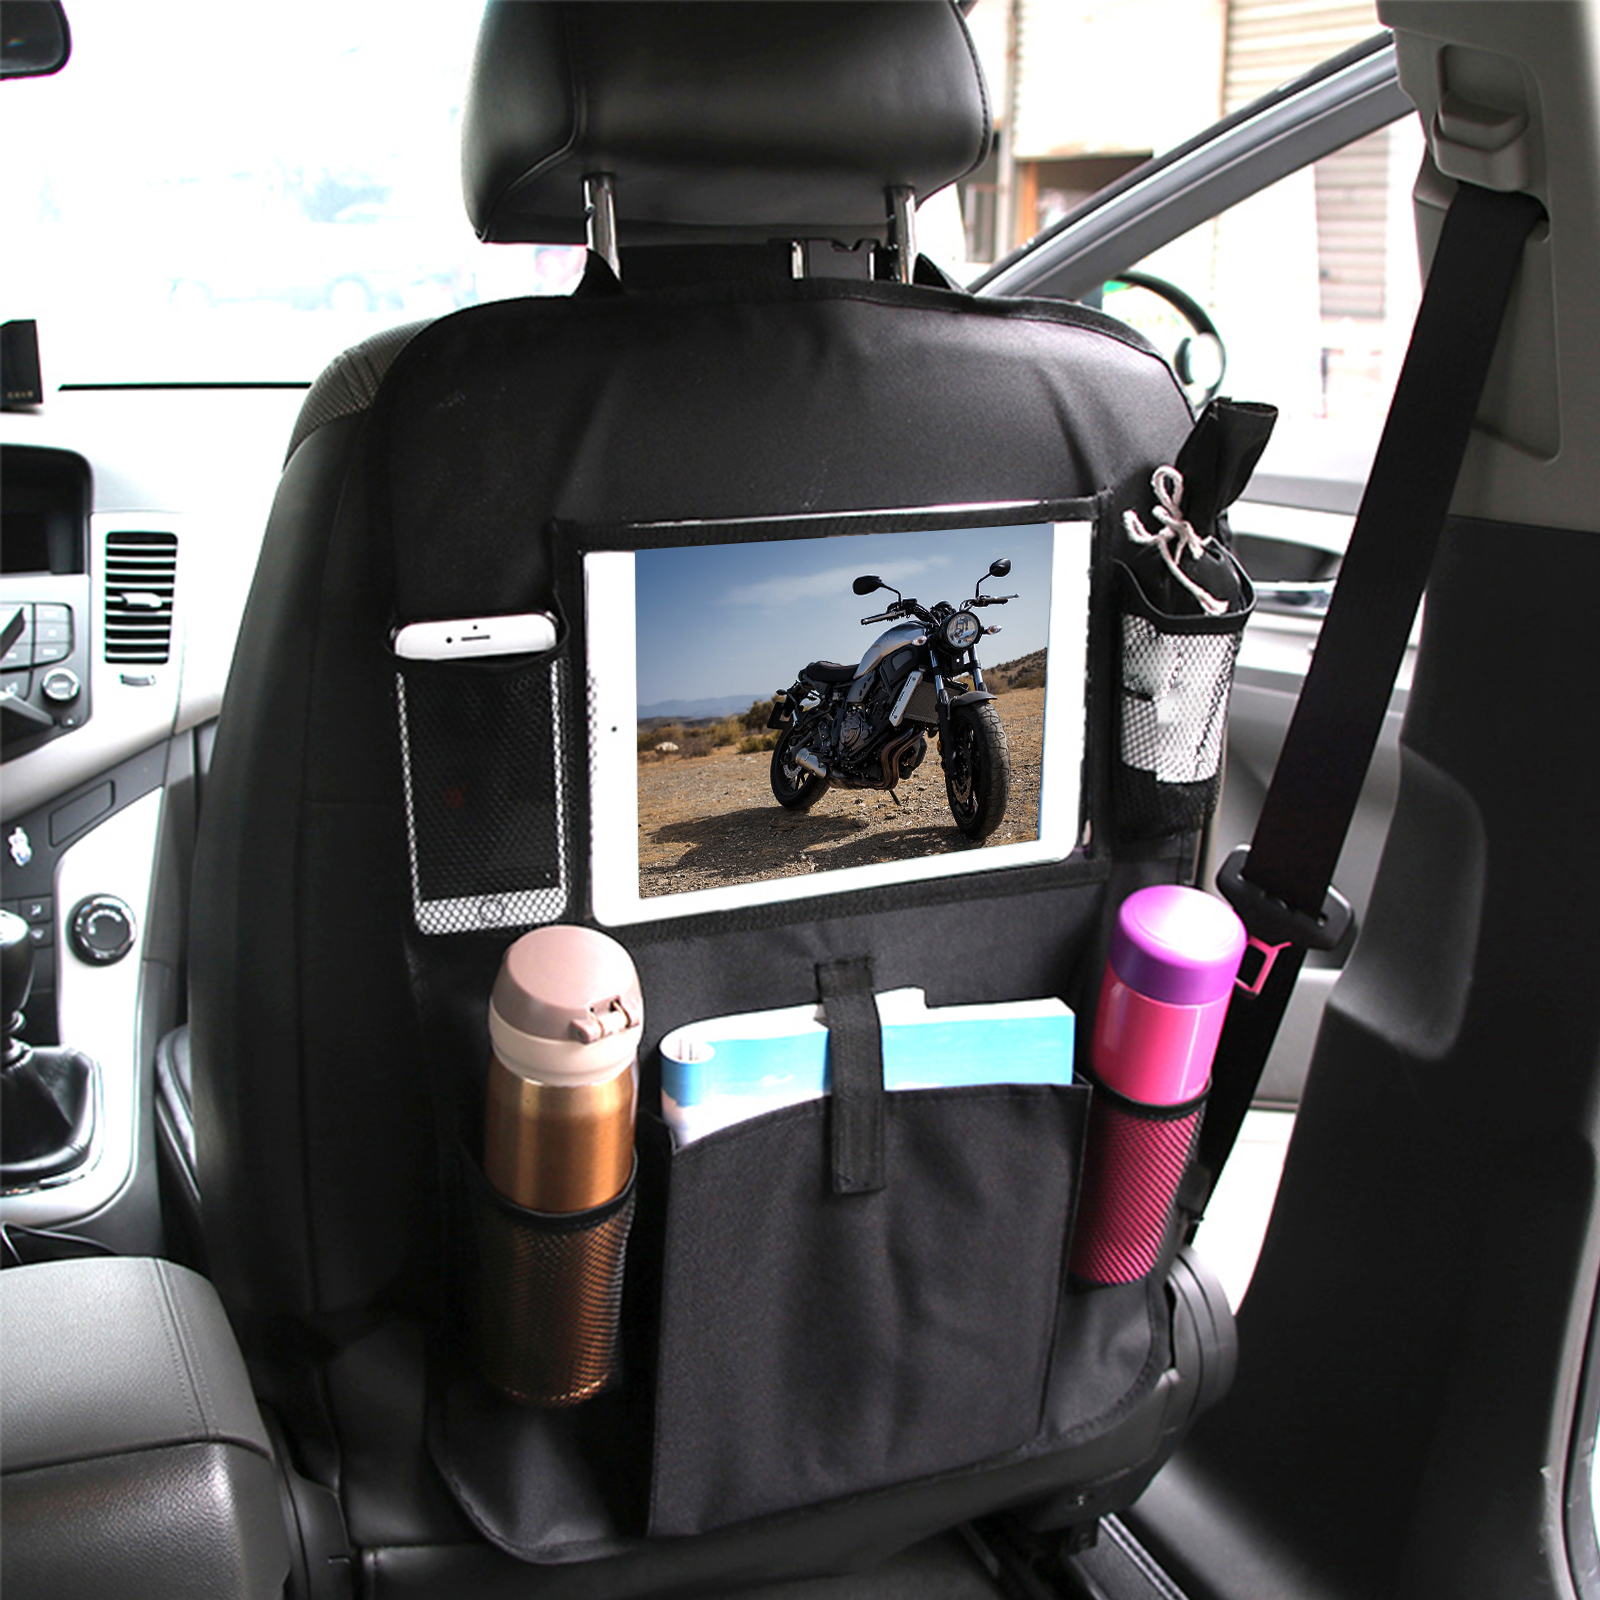 Auto Organizer Tablet Tsv Kick Mats Car Backseat Organizer Black Baby Child Kids Auto Back Of Seat Protector Vehicle Waterproof Seat Back Kick Protectors